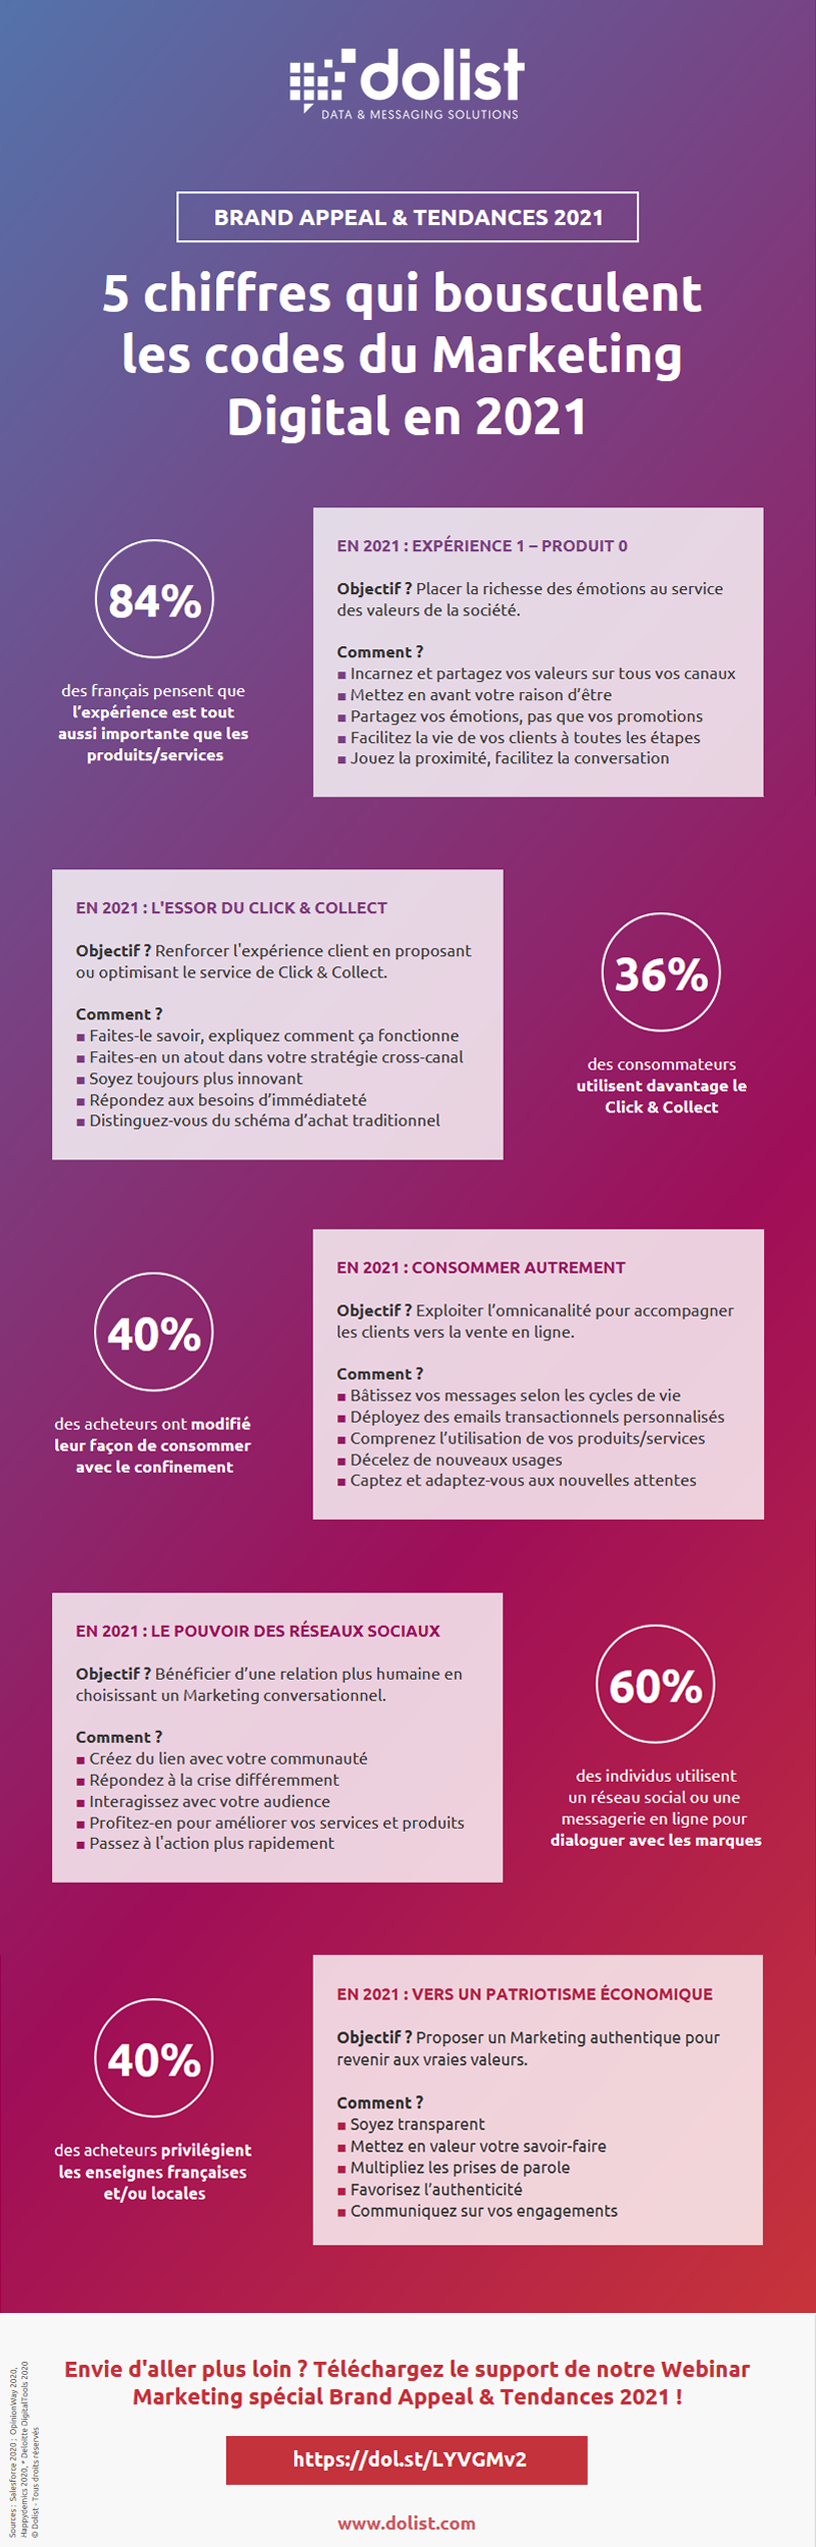 Infographie Brand Appeal & Tendances 2021